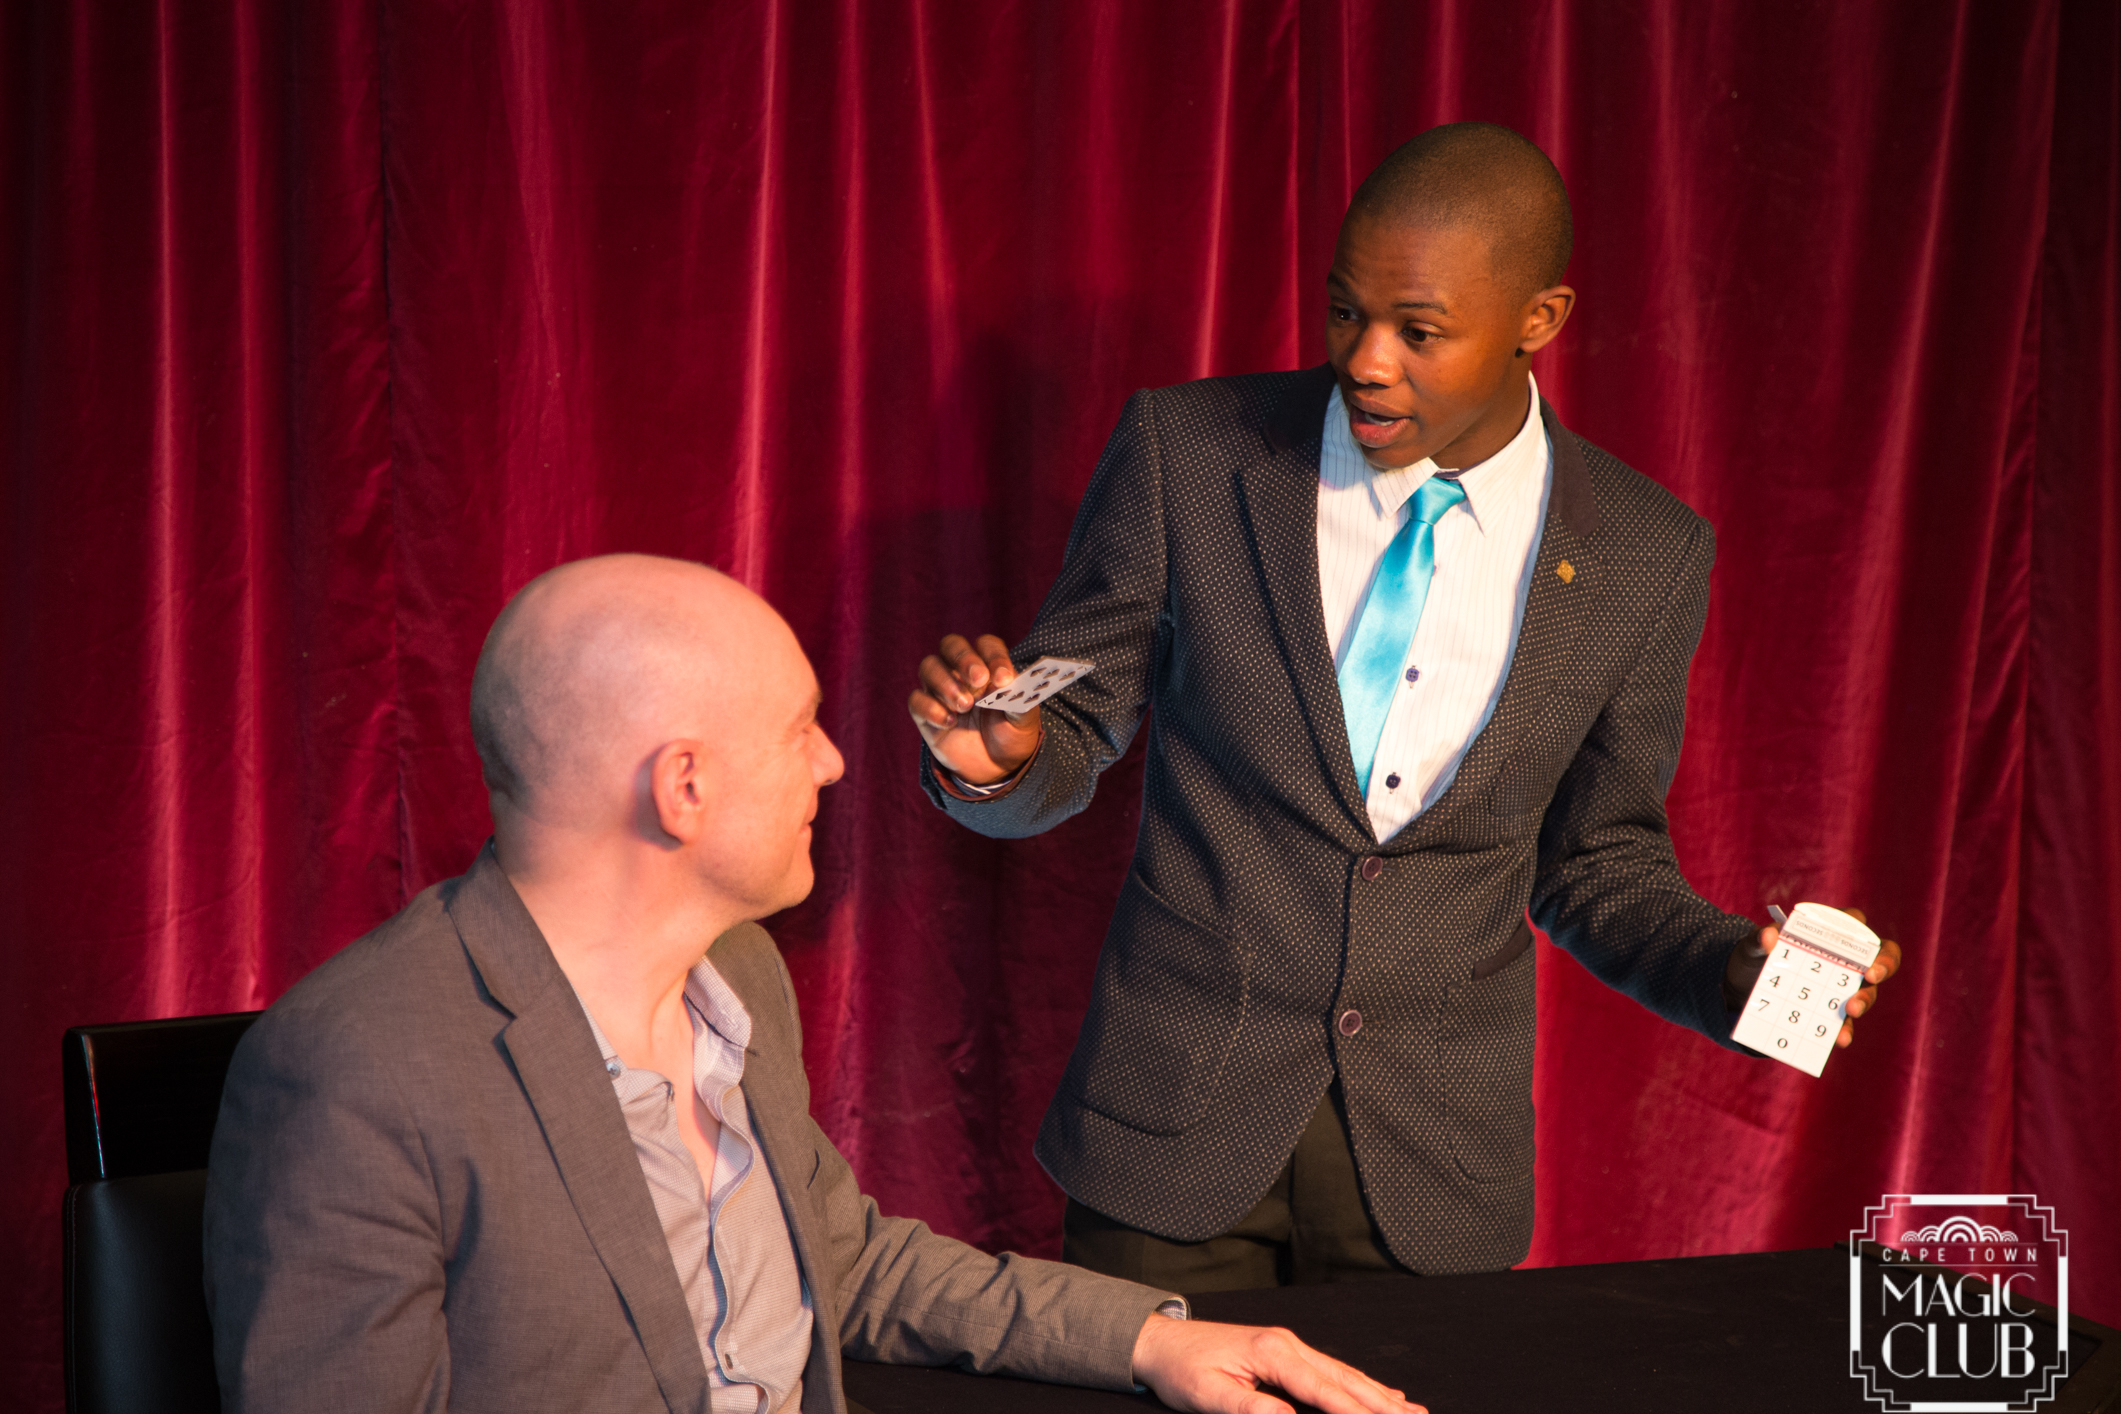 Junior Magic Champion, Anele Dyasi, will mystify you with thrilling sleight-of-hand. [Photo credit: Andrew Gorman]